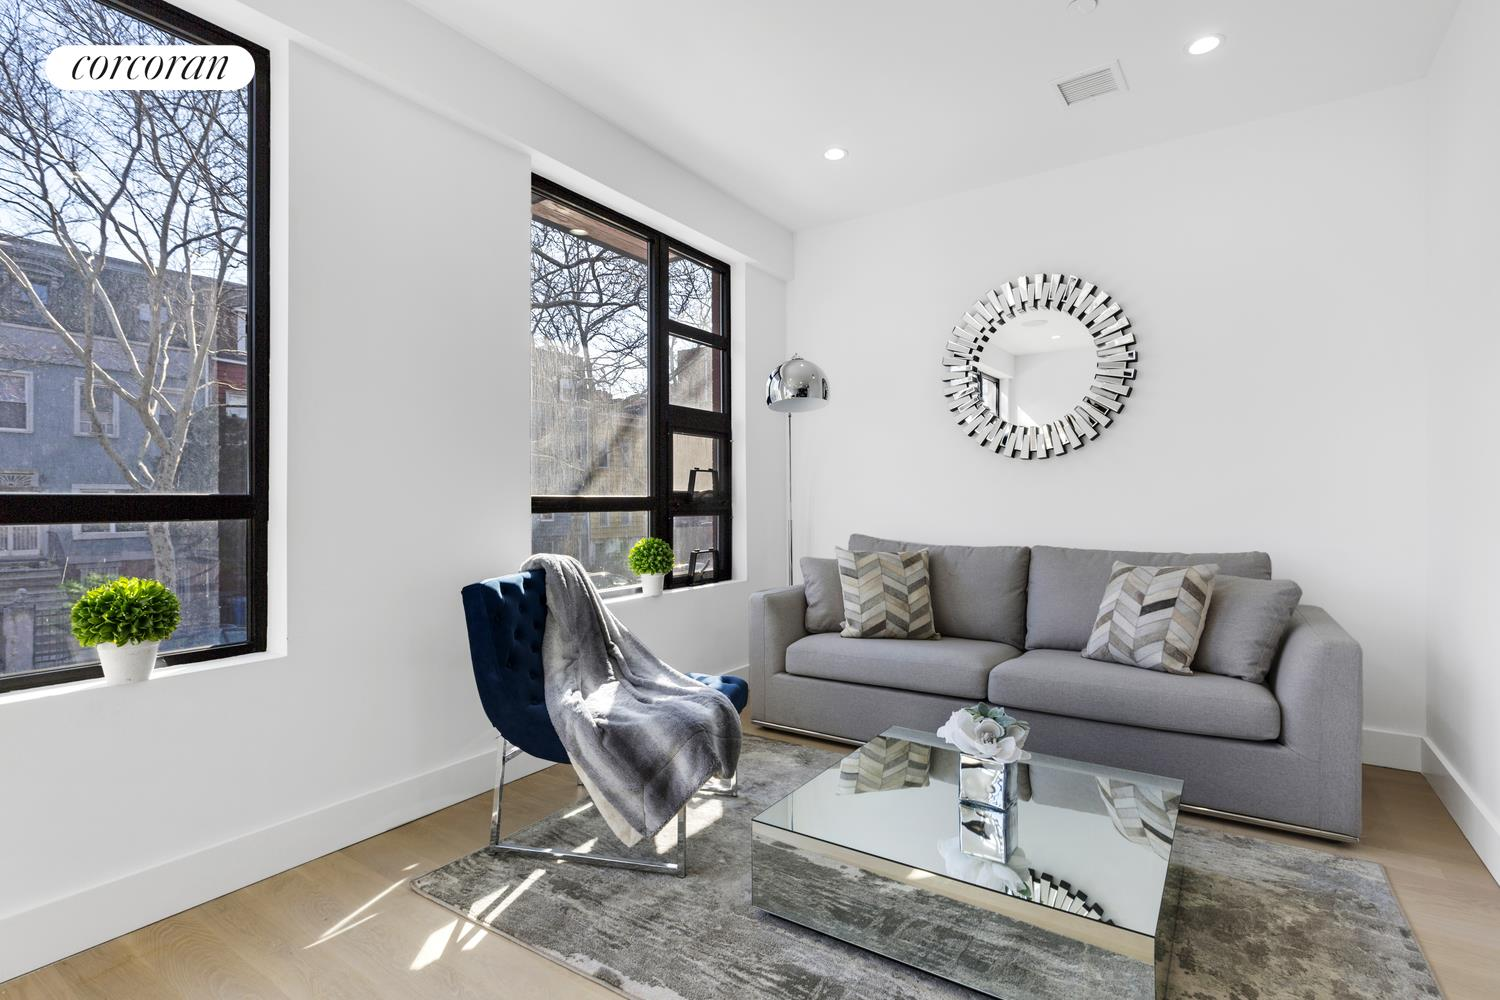 Corcoran, 149 Clifton Place, Apt. PH, Clinton Hill Real Estate ...